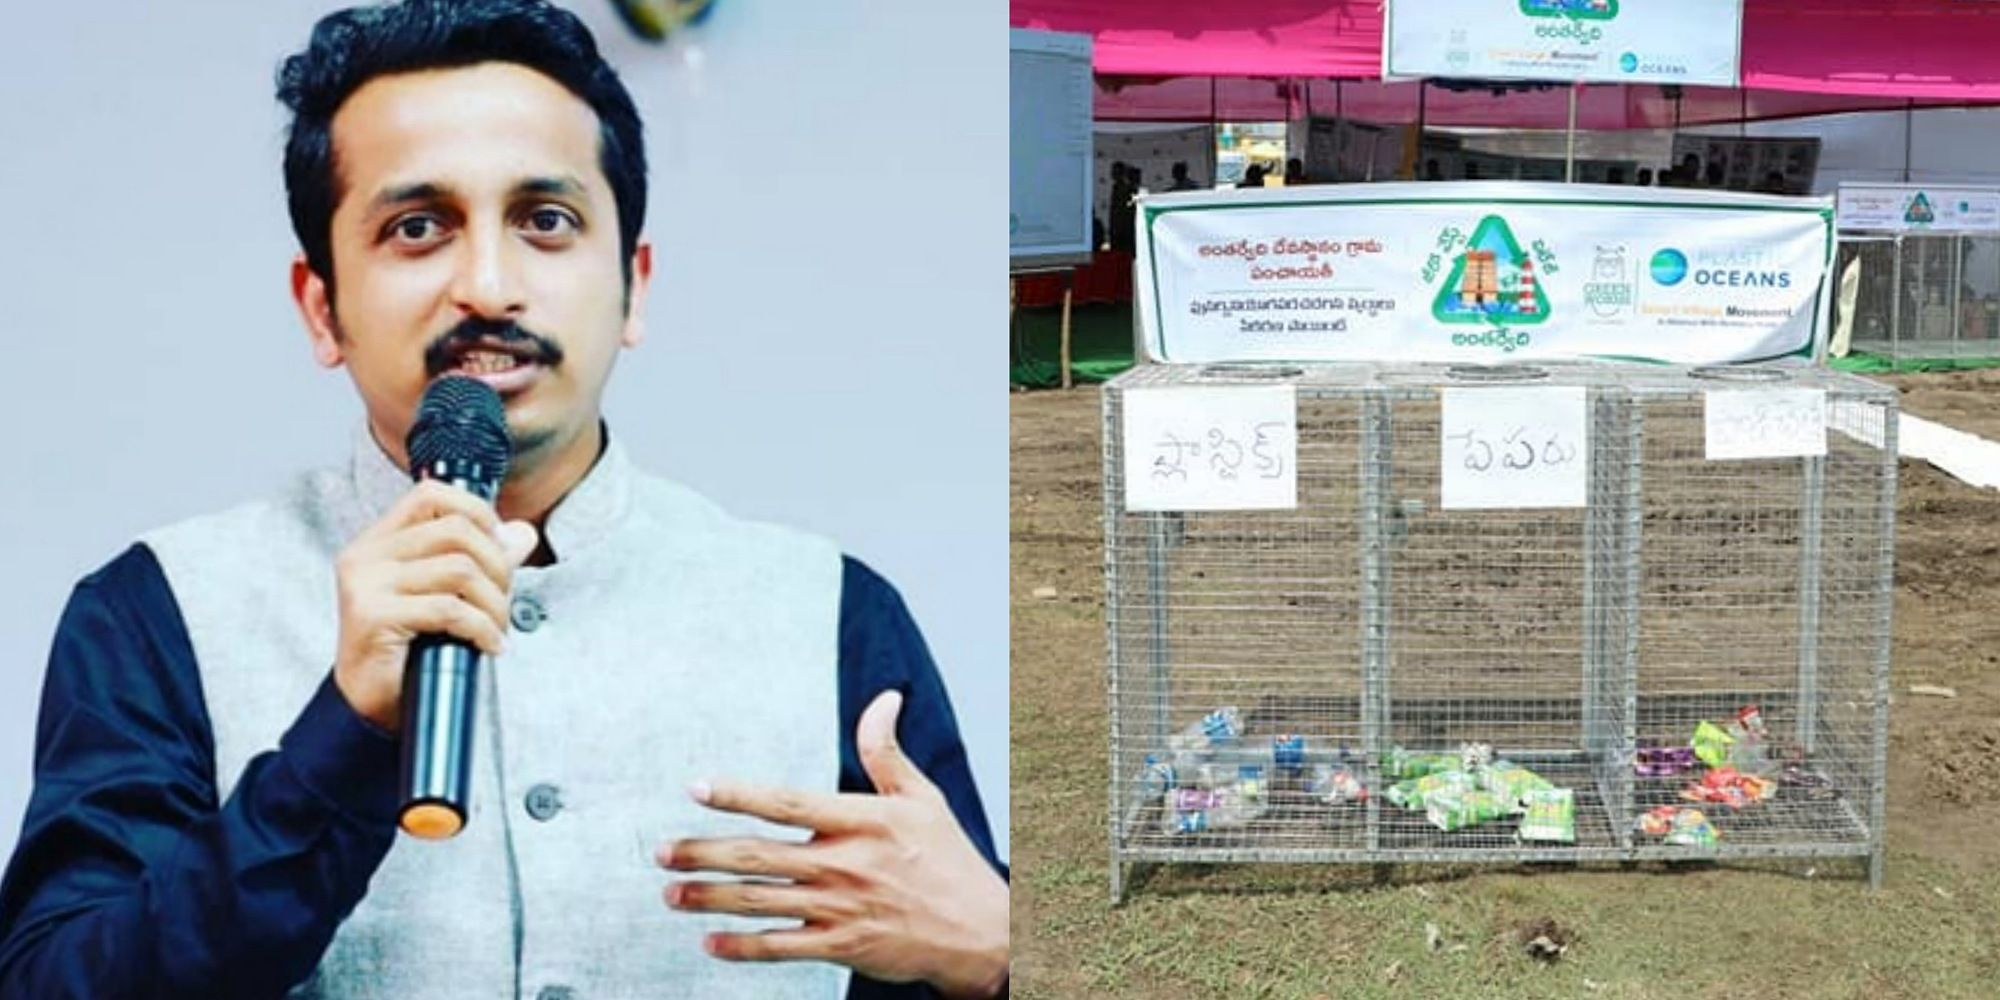 Green Worms managing waste by collecting and recycling the garbage since 2014